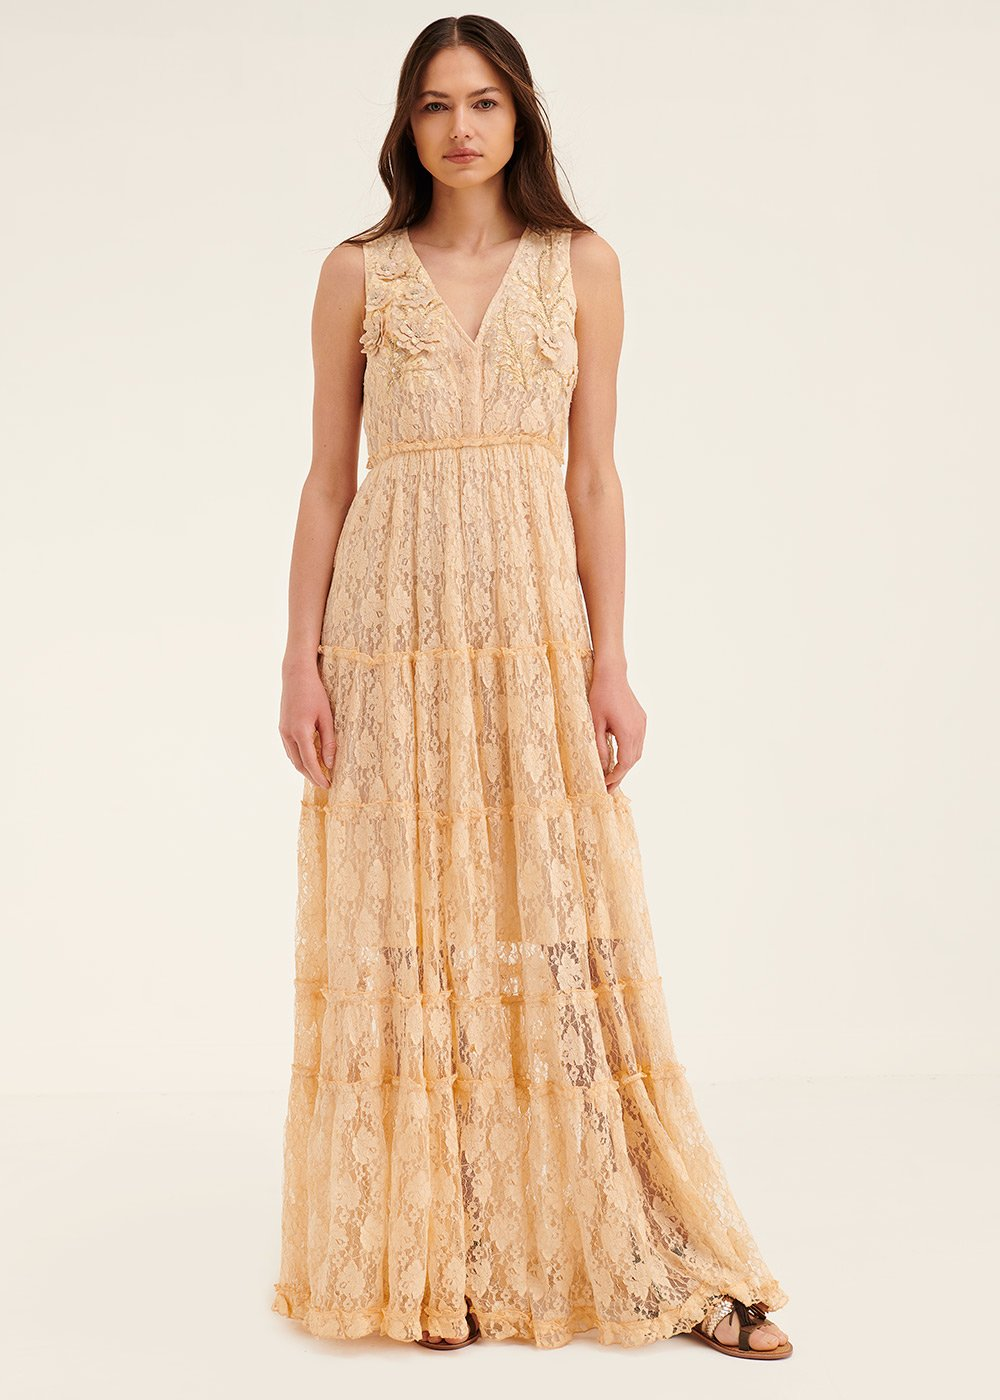 Adyd dress with flounced skirt - Pink - Woman